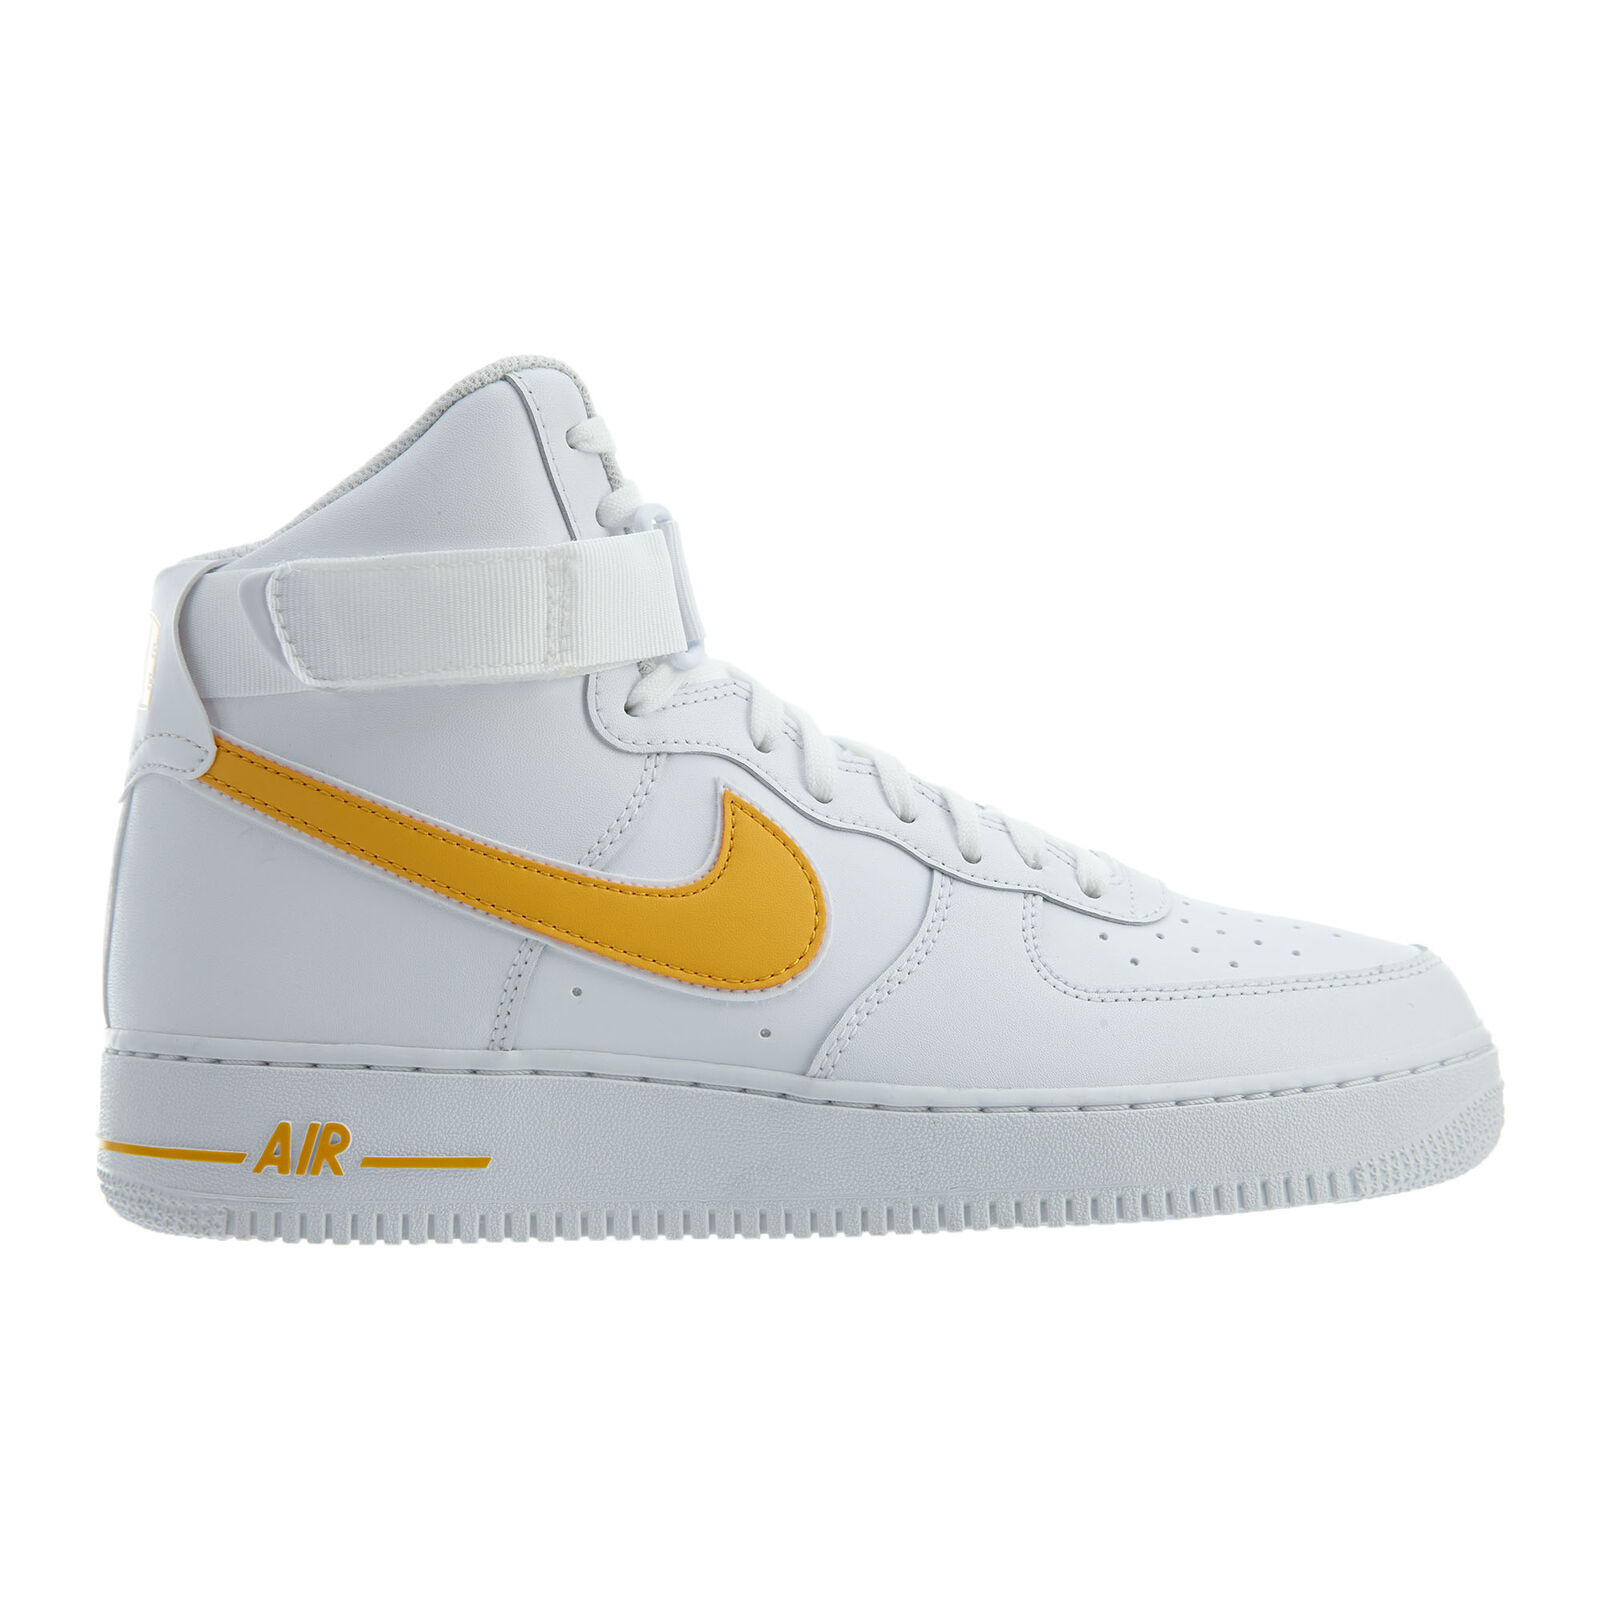 Force Air Nike 1 shoes 10.5 Size gold University White